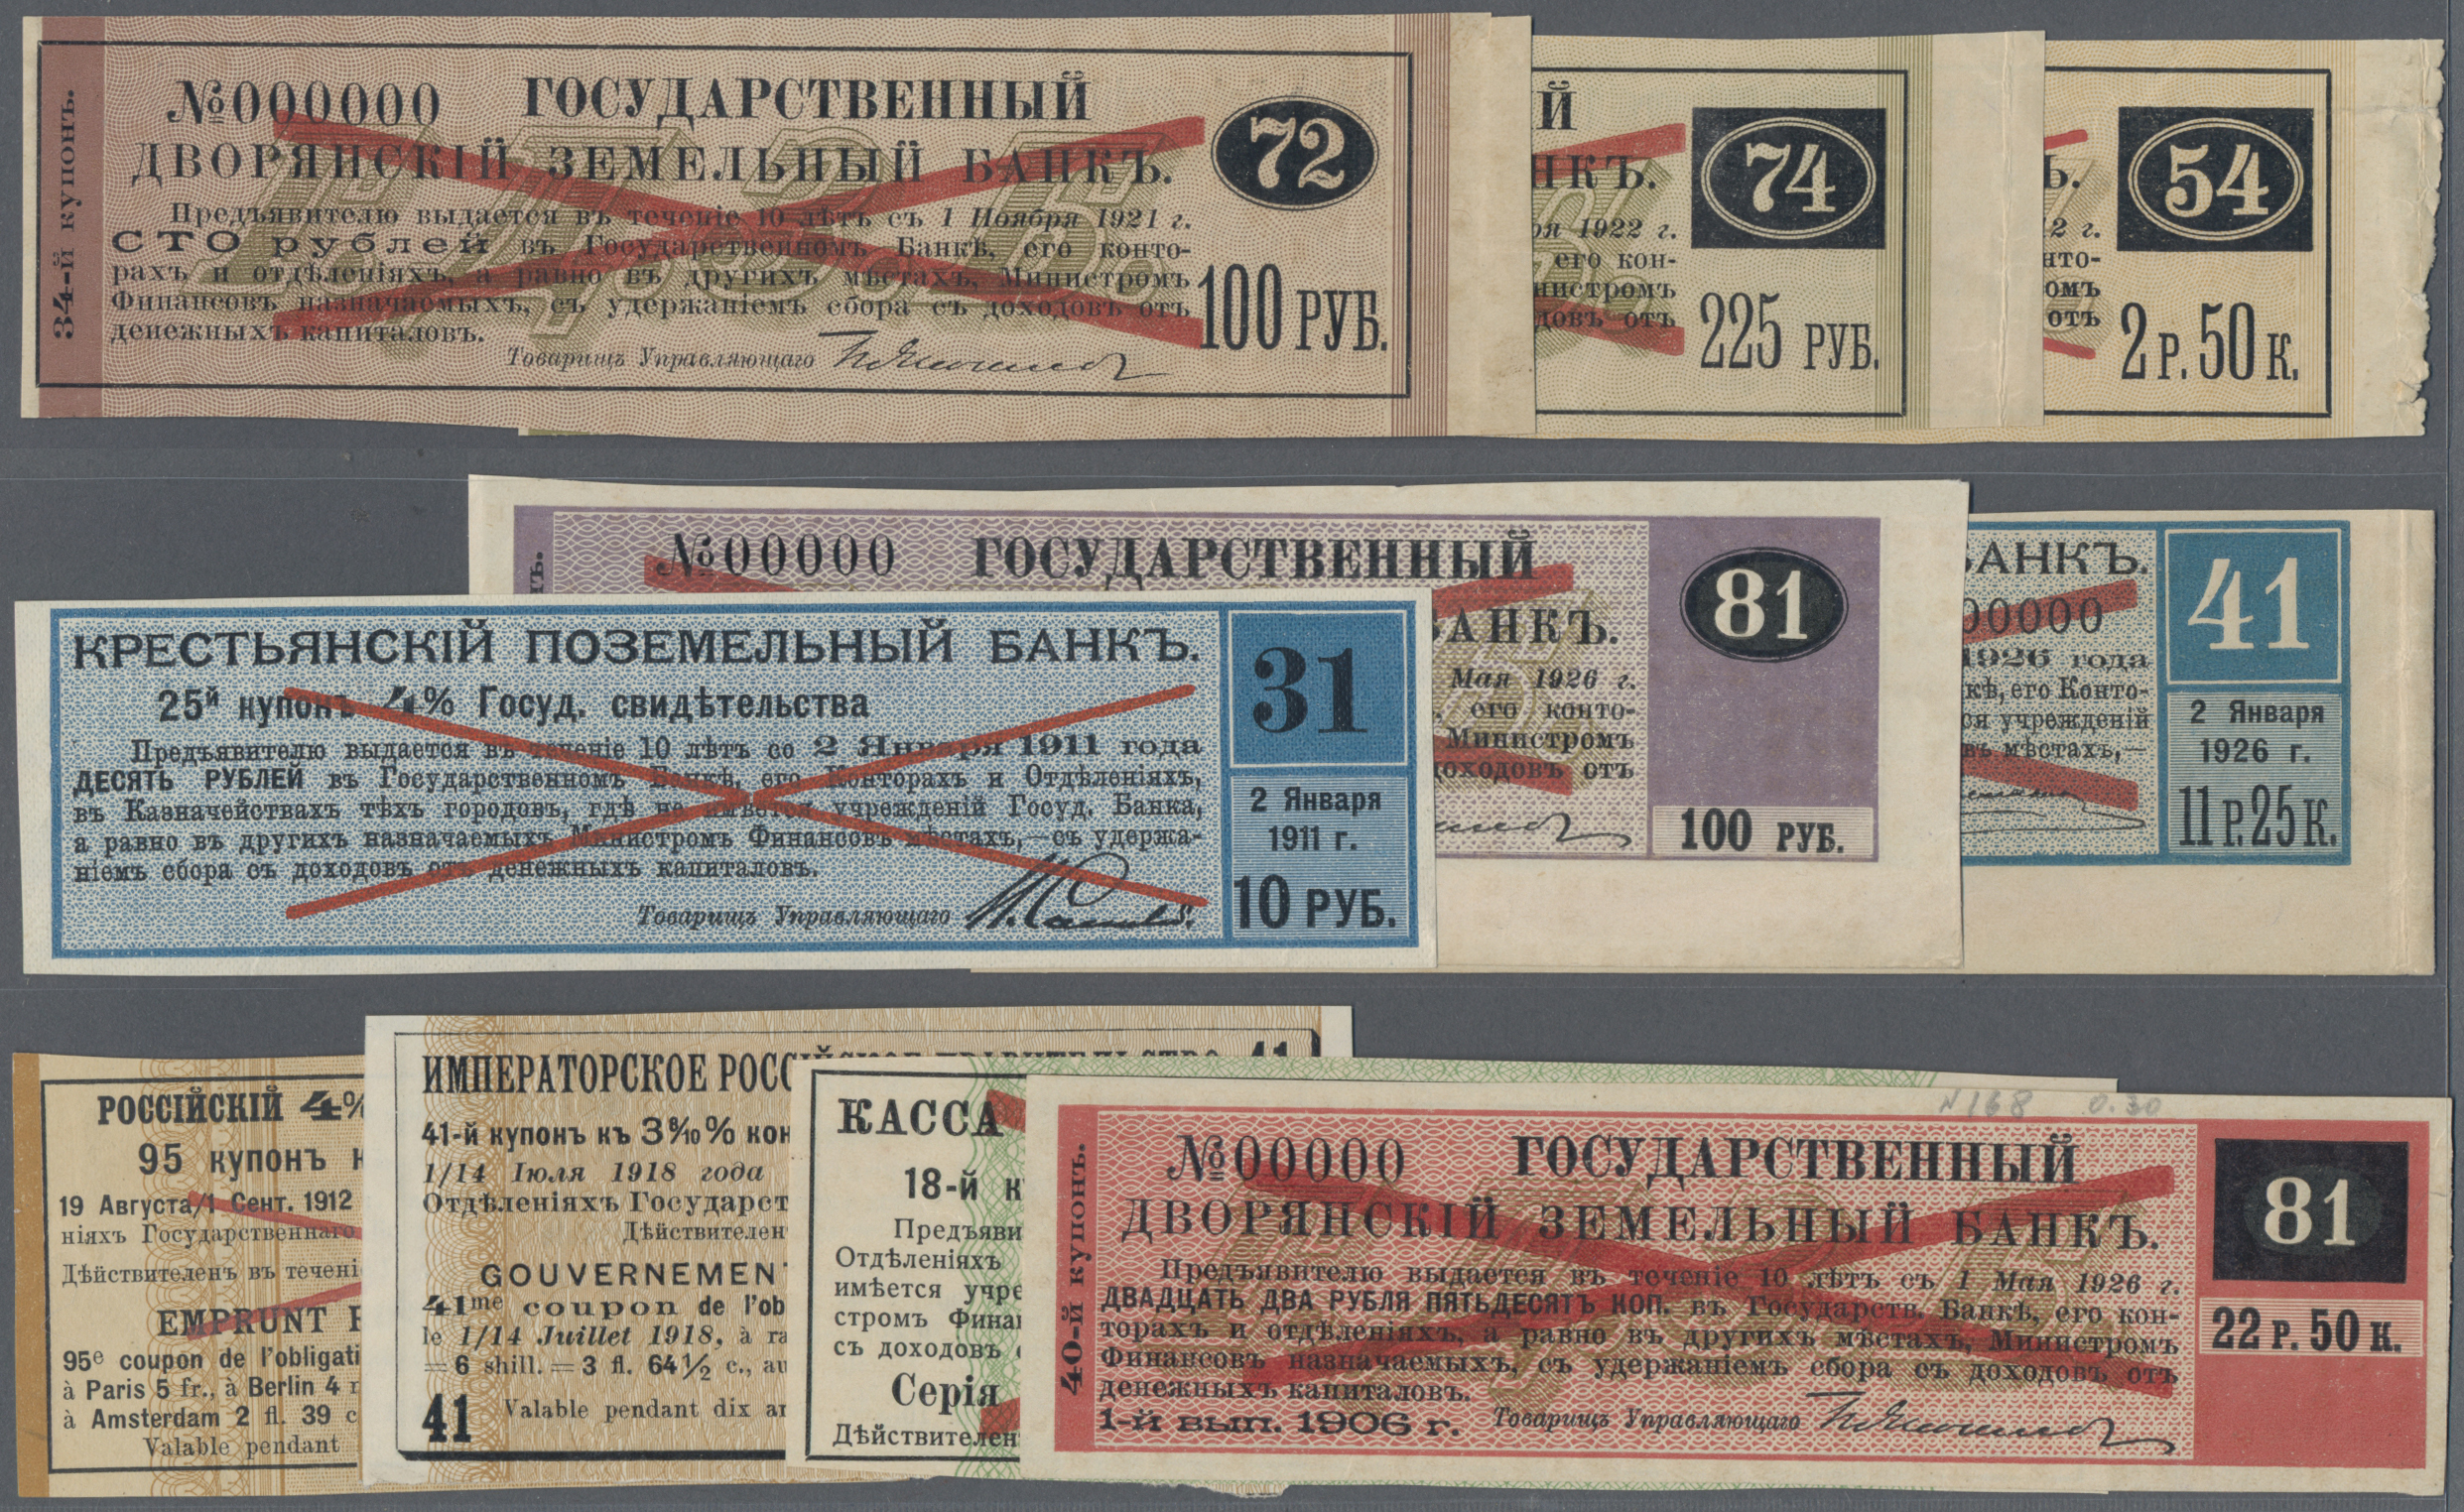 Lot 01082 - Russia / Russland | Banknoten  -  Auktionshaus Christoph Gärtner GmbH & Co. KG Sale #48 The Banknotes